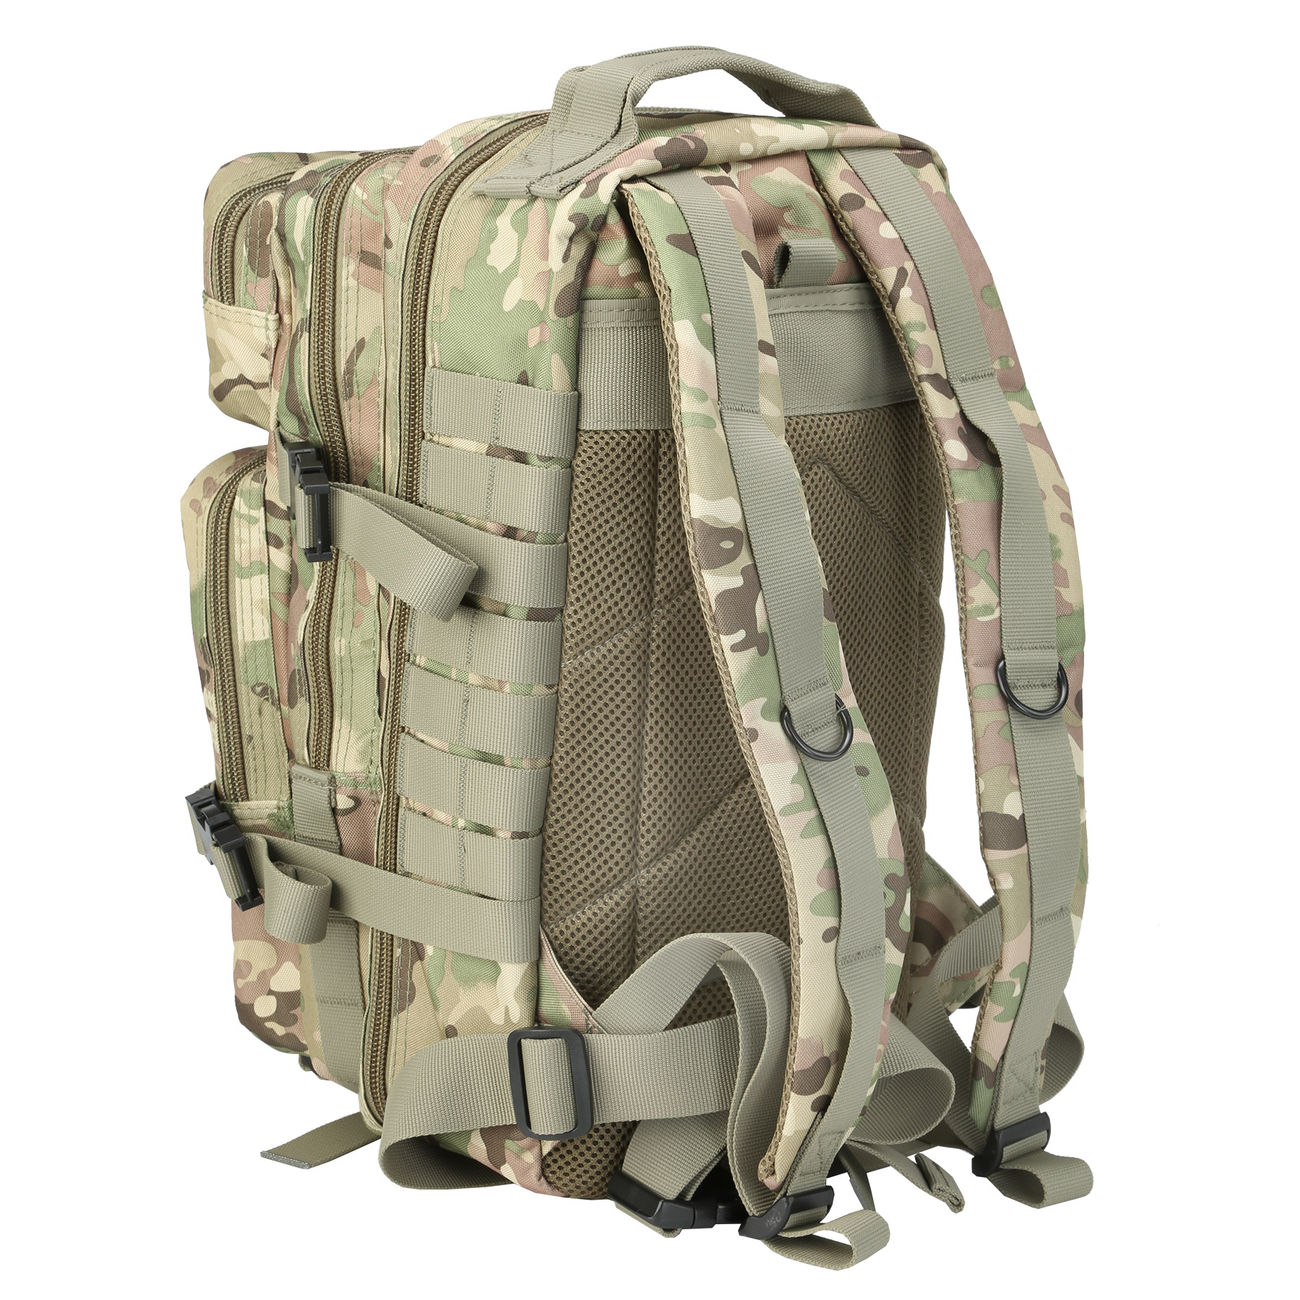 MFH Rucksack Assault I operation camo 3